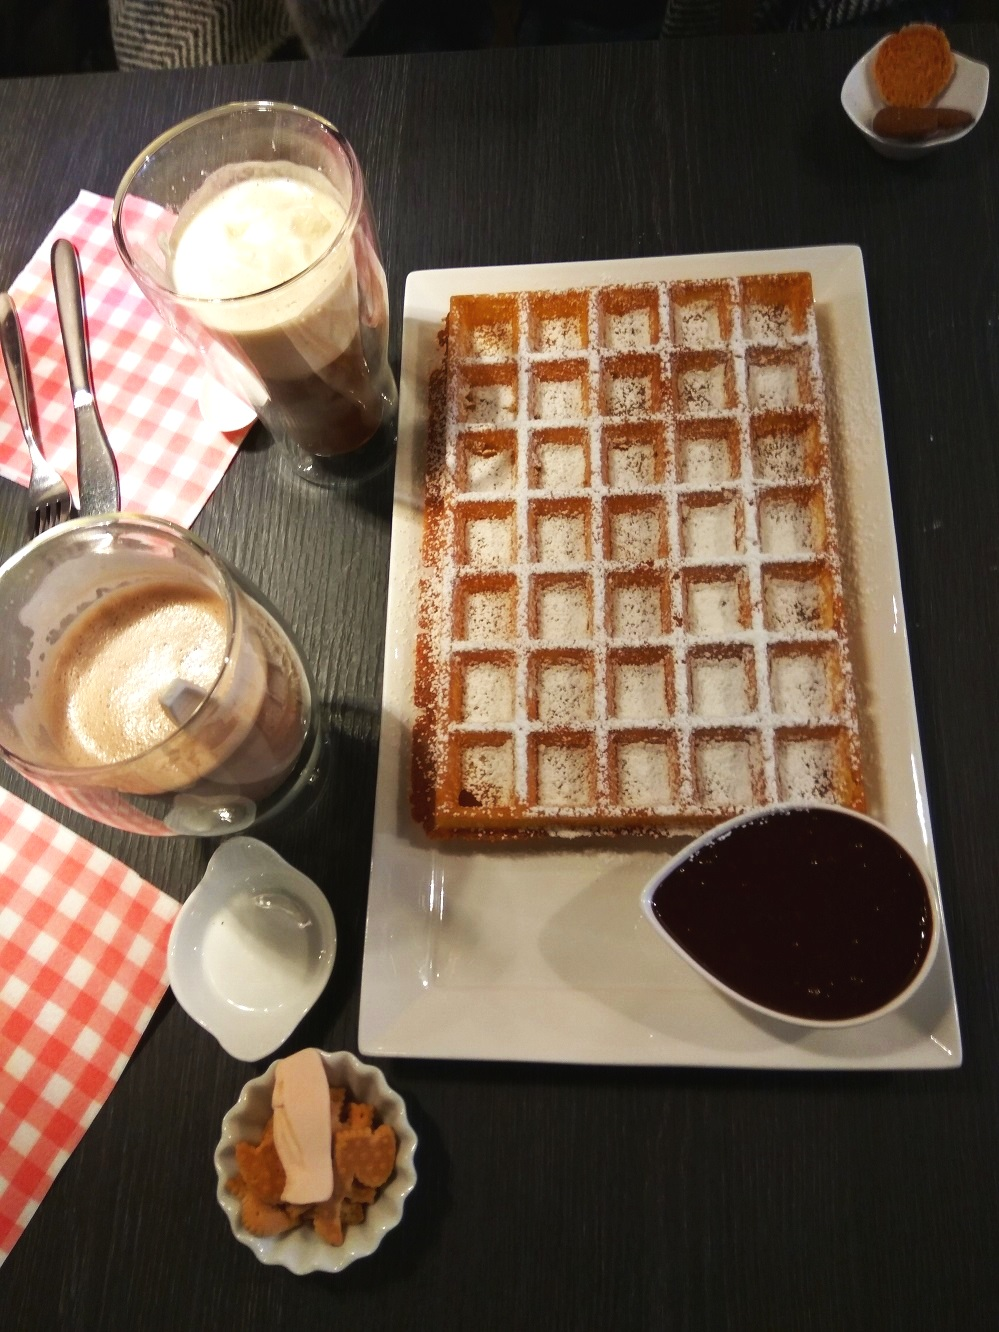 What-to-do-in-bruges-belgian-waffles-lizzie-wafels.jpg